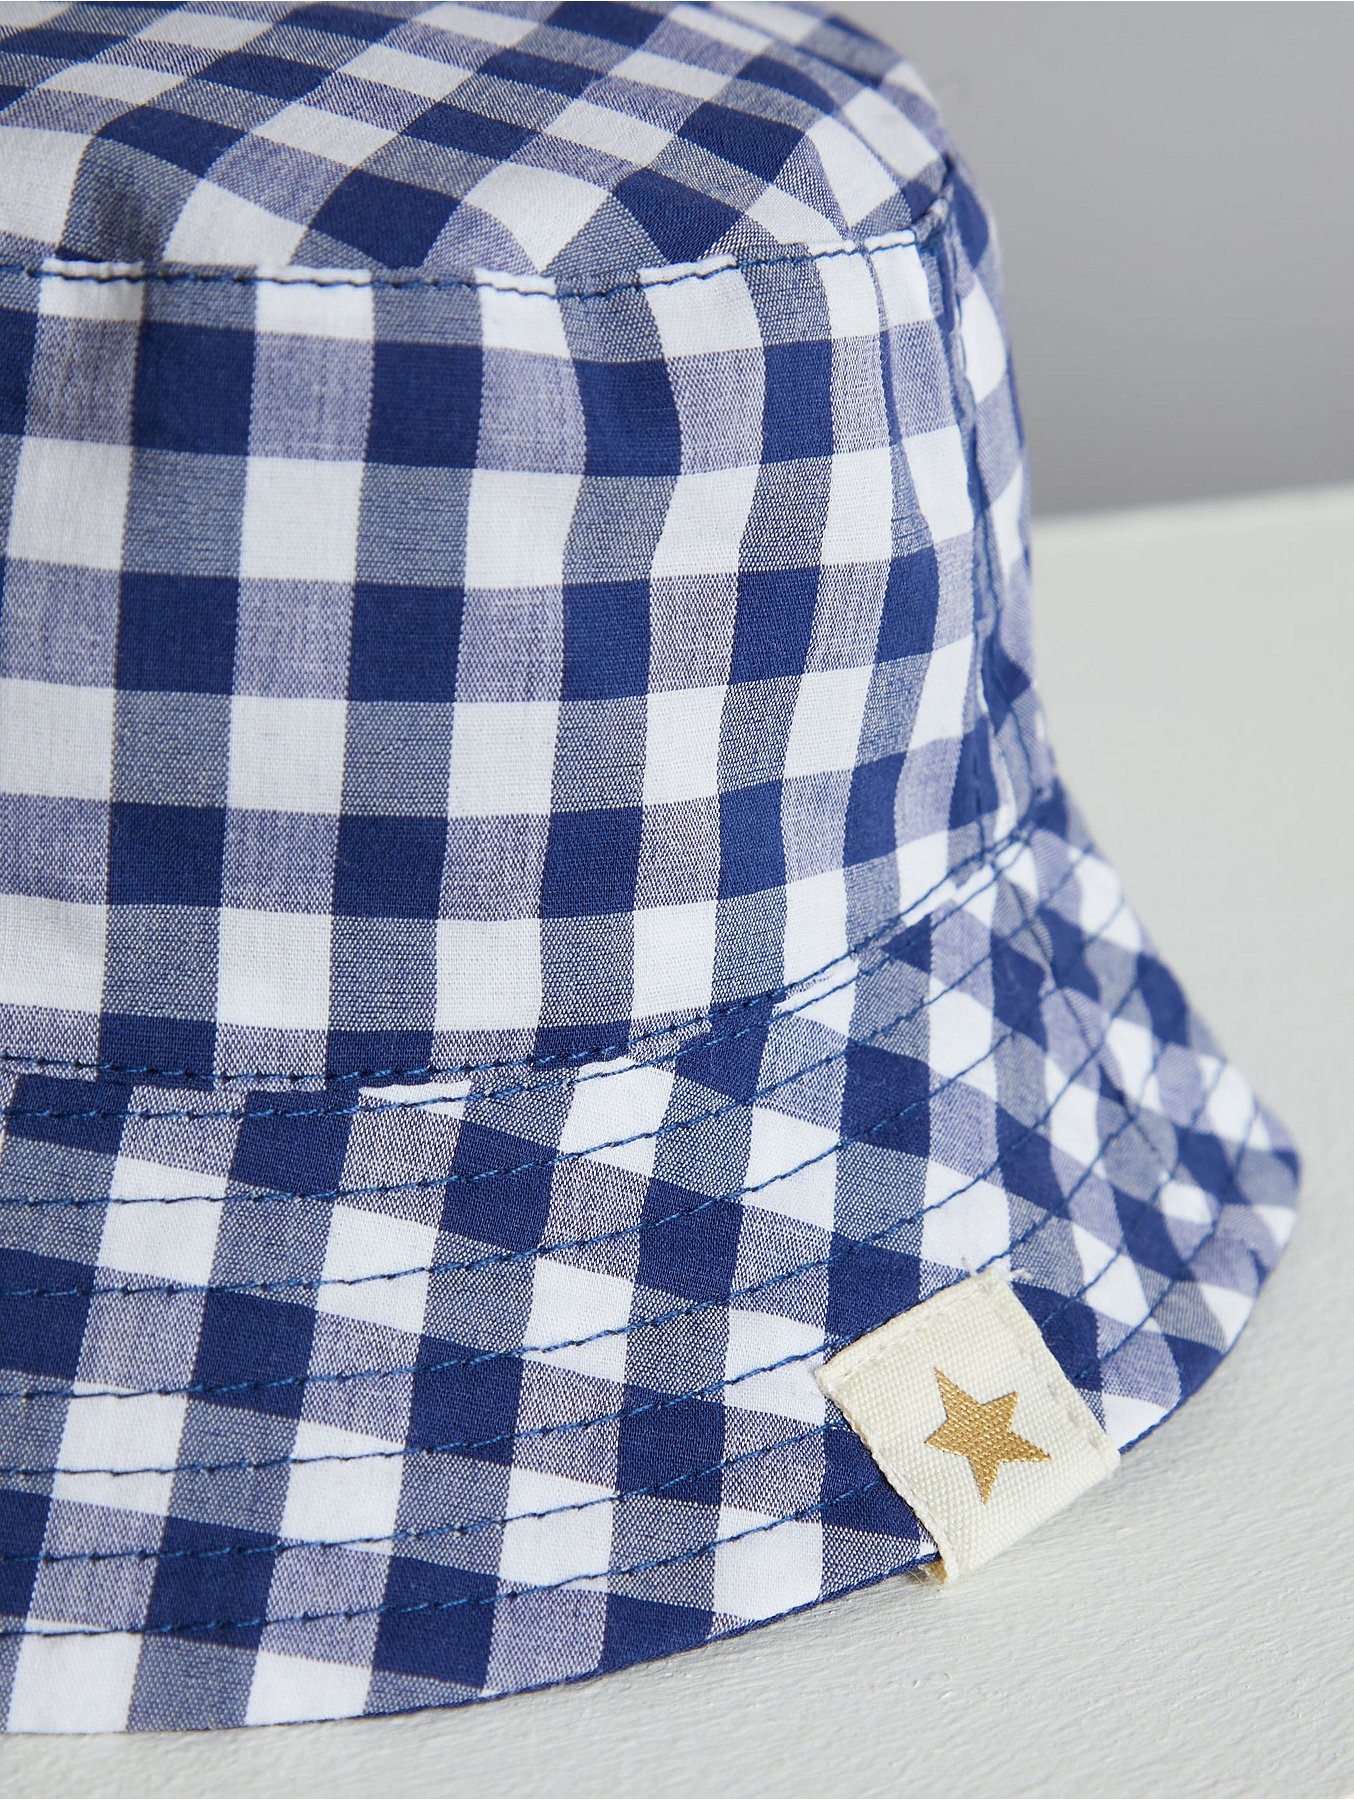 8368a2bf88b Billie Faiers Navy Gingham Reversible Bucket Hat. Reset